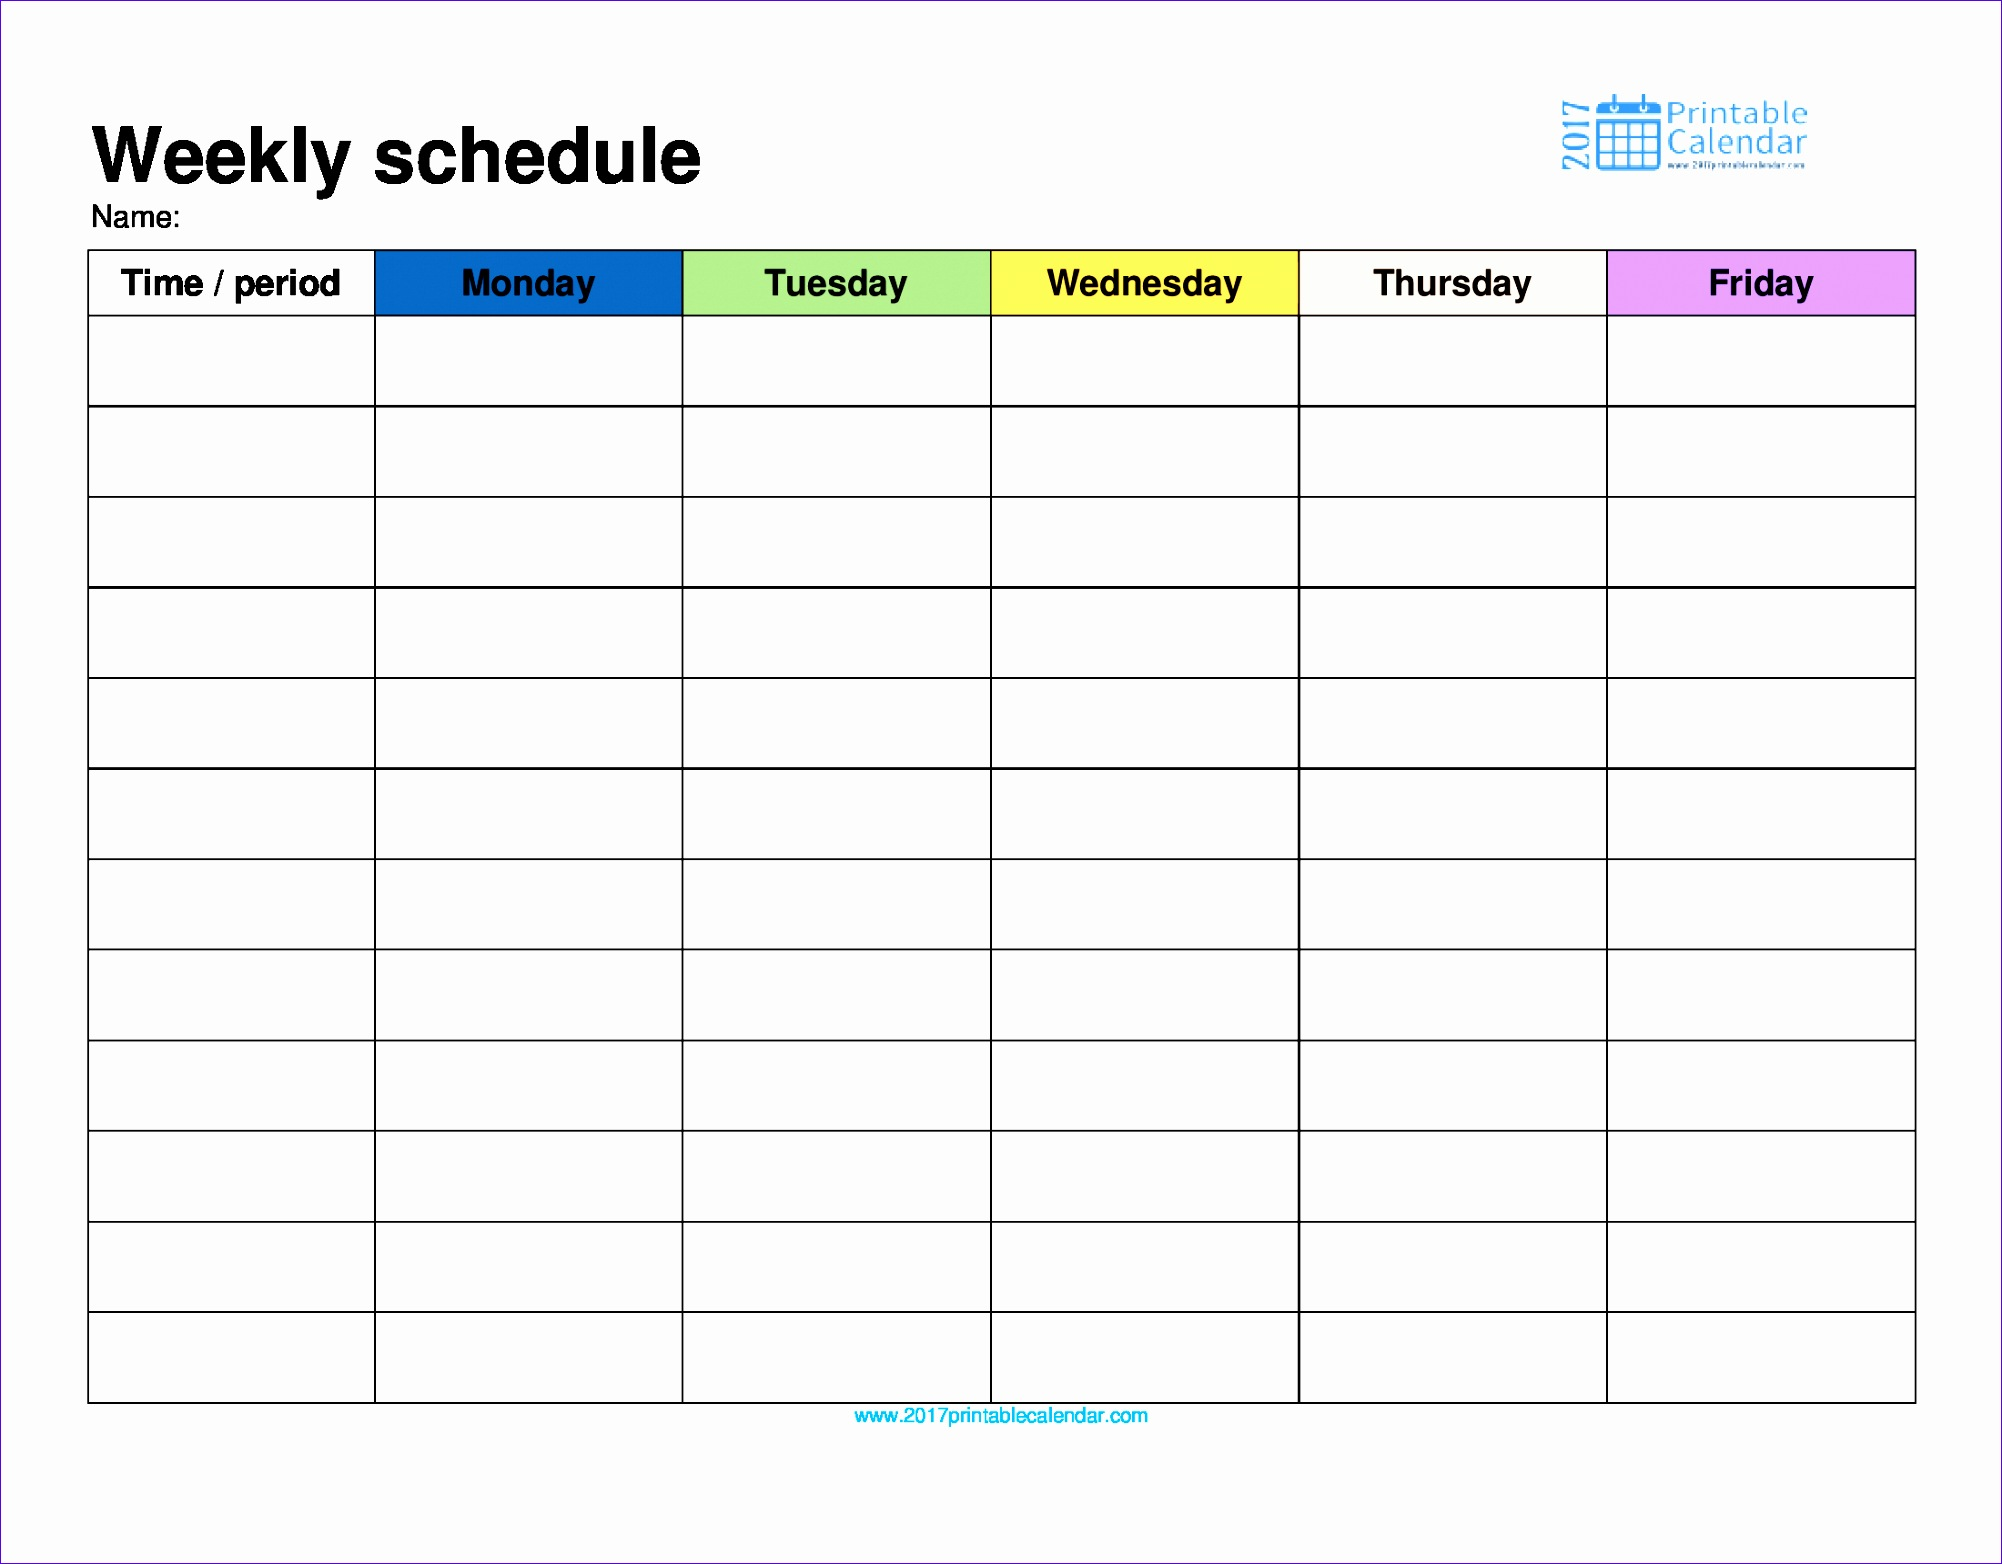 weekly schedule monday to friday in color